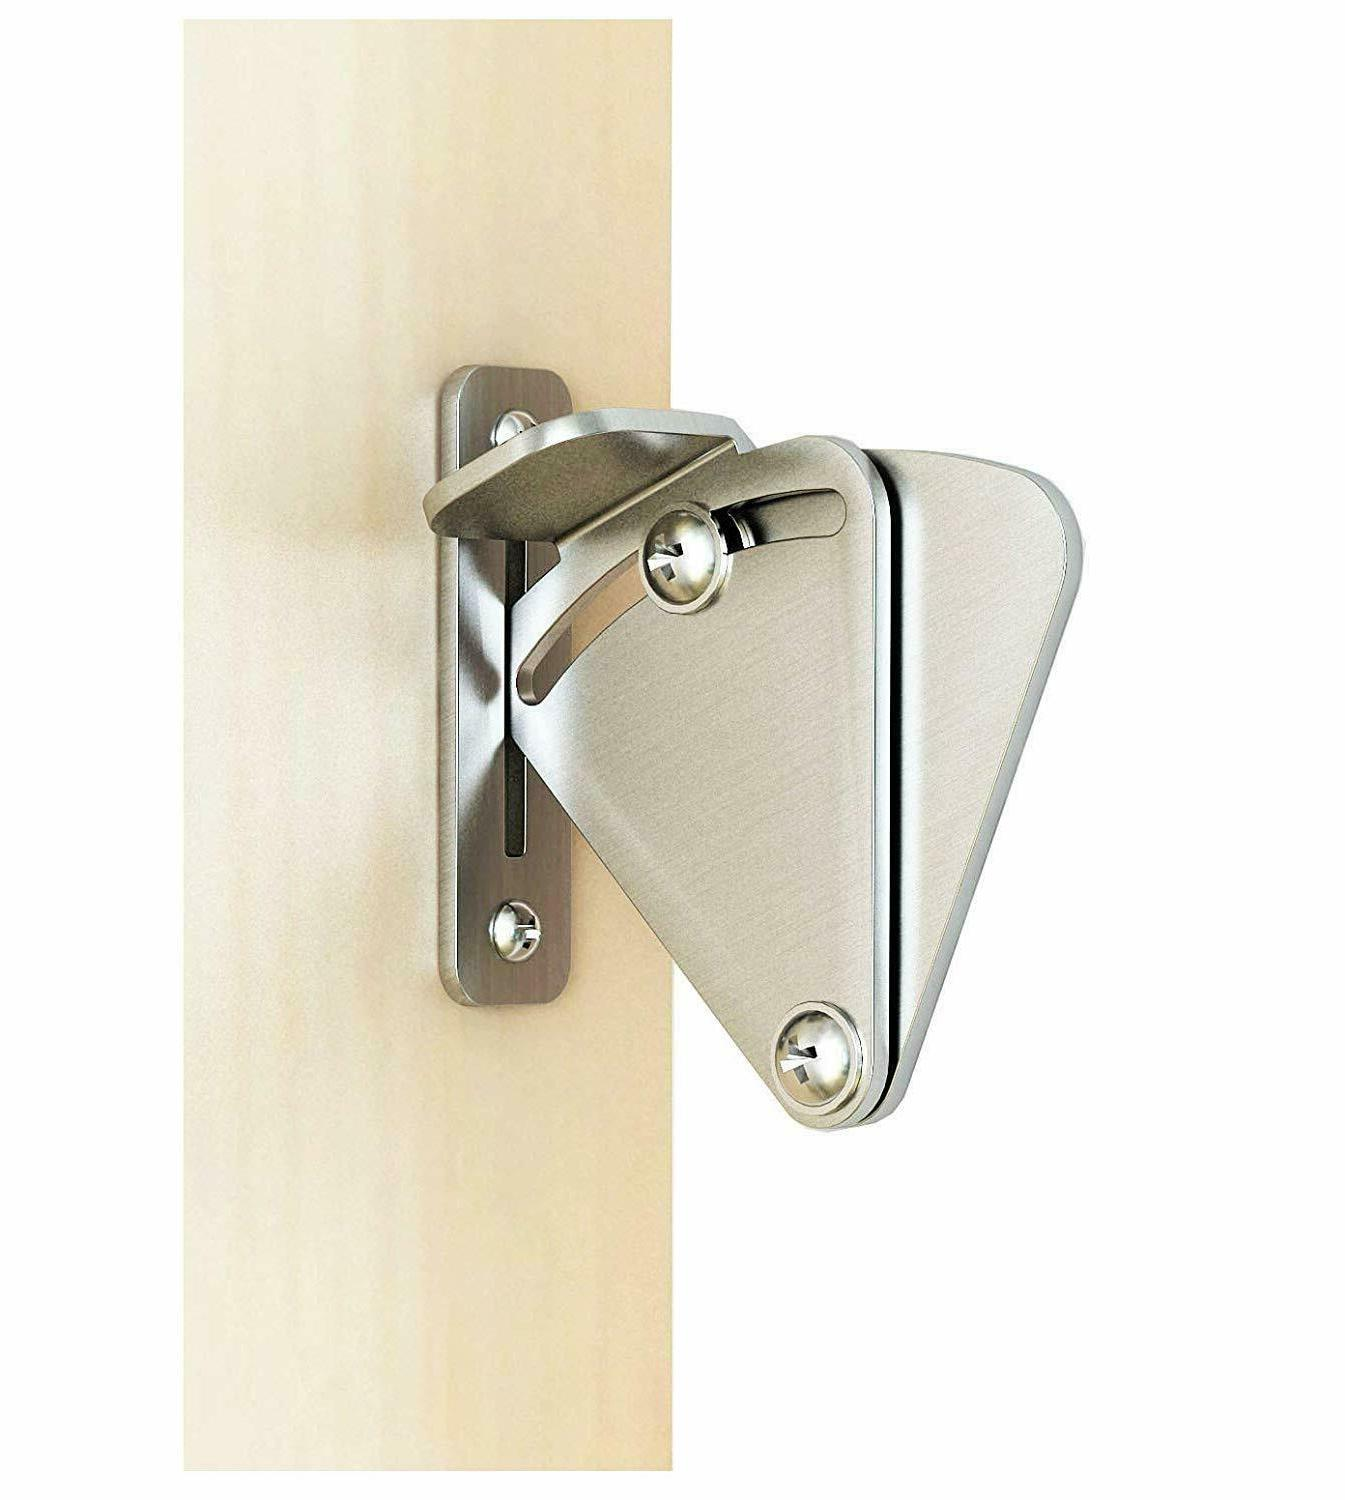 DIYHD Sliding Barn Latch With Pin,Black/Brushed